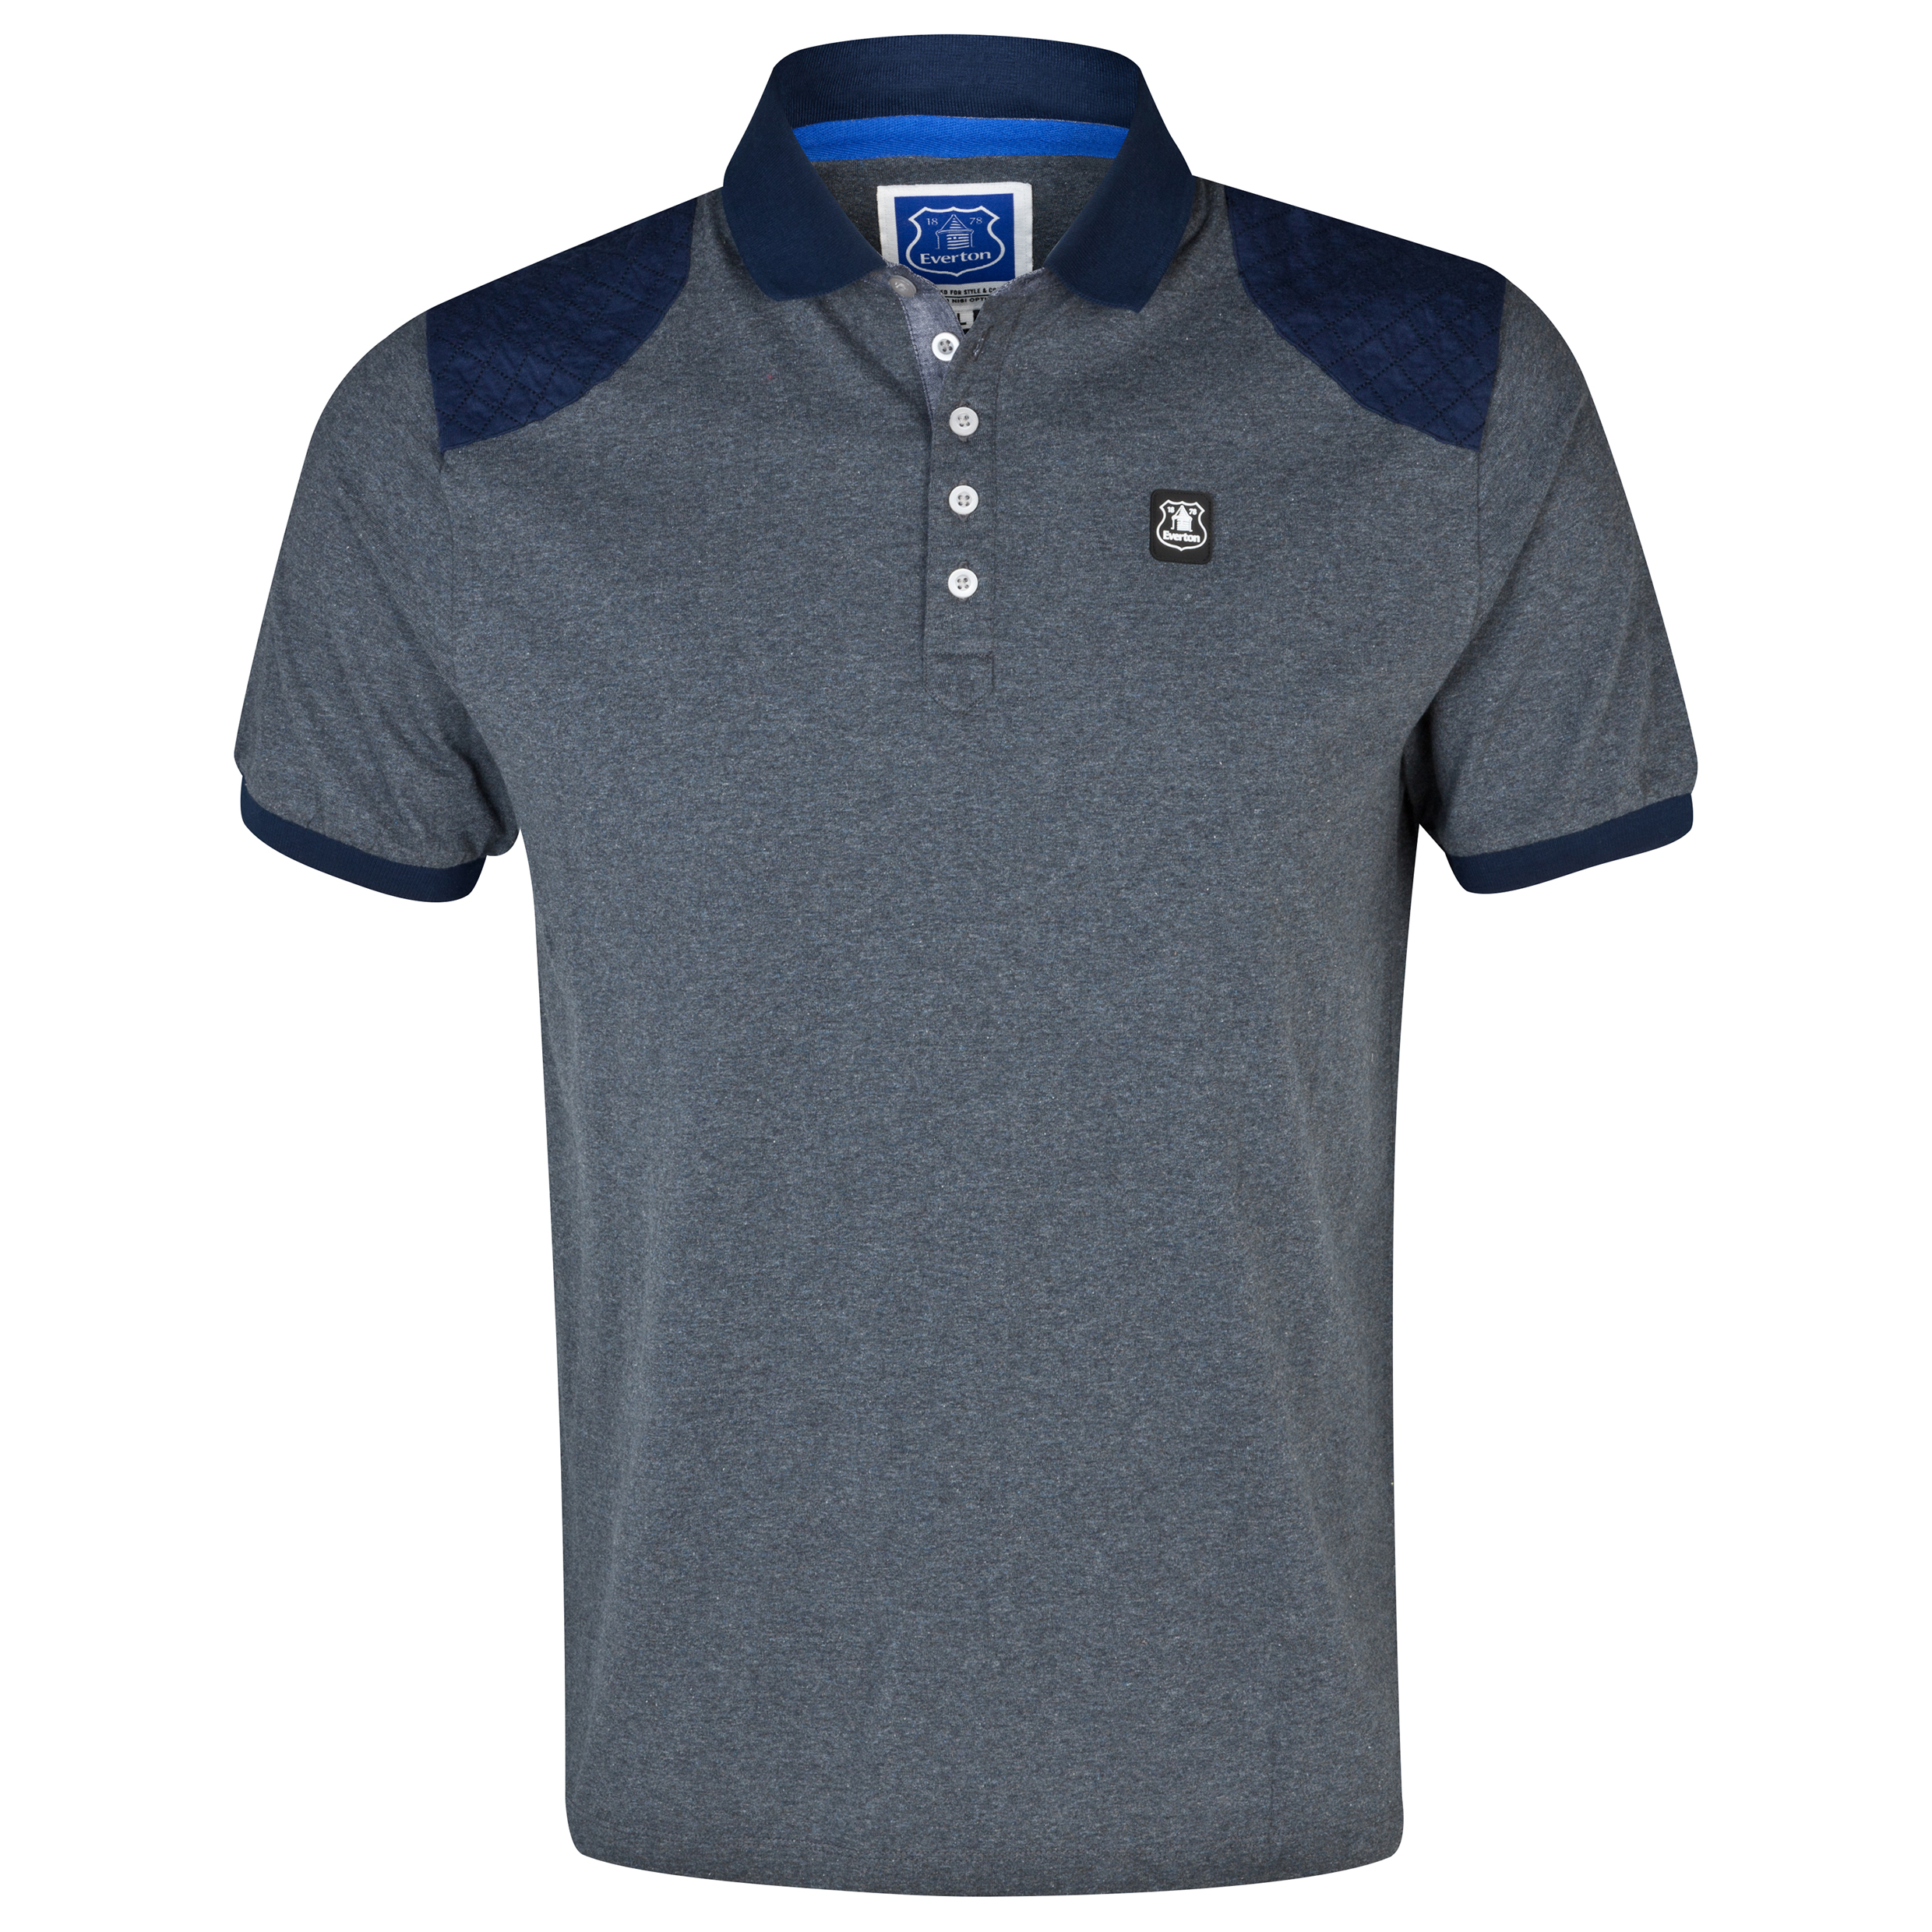 Everton Elko Polo Shirt - Mens Charcoal